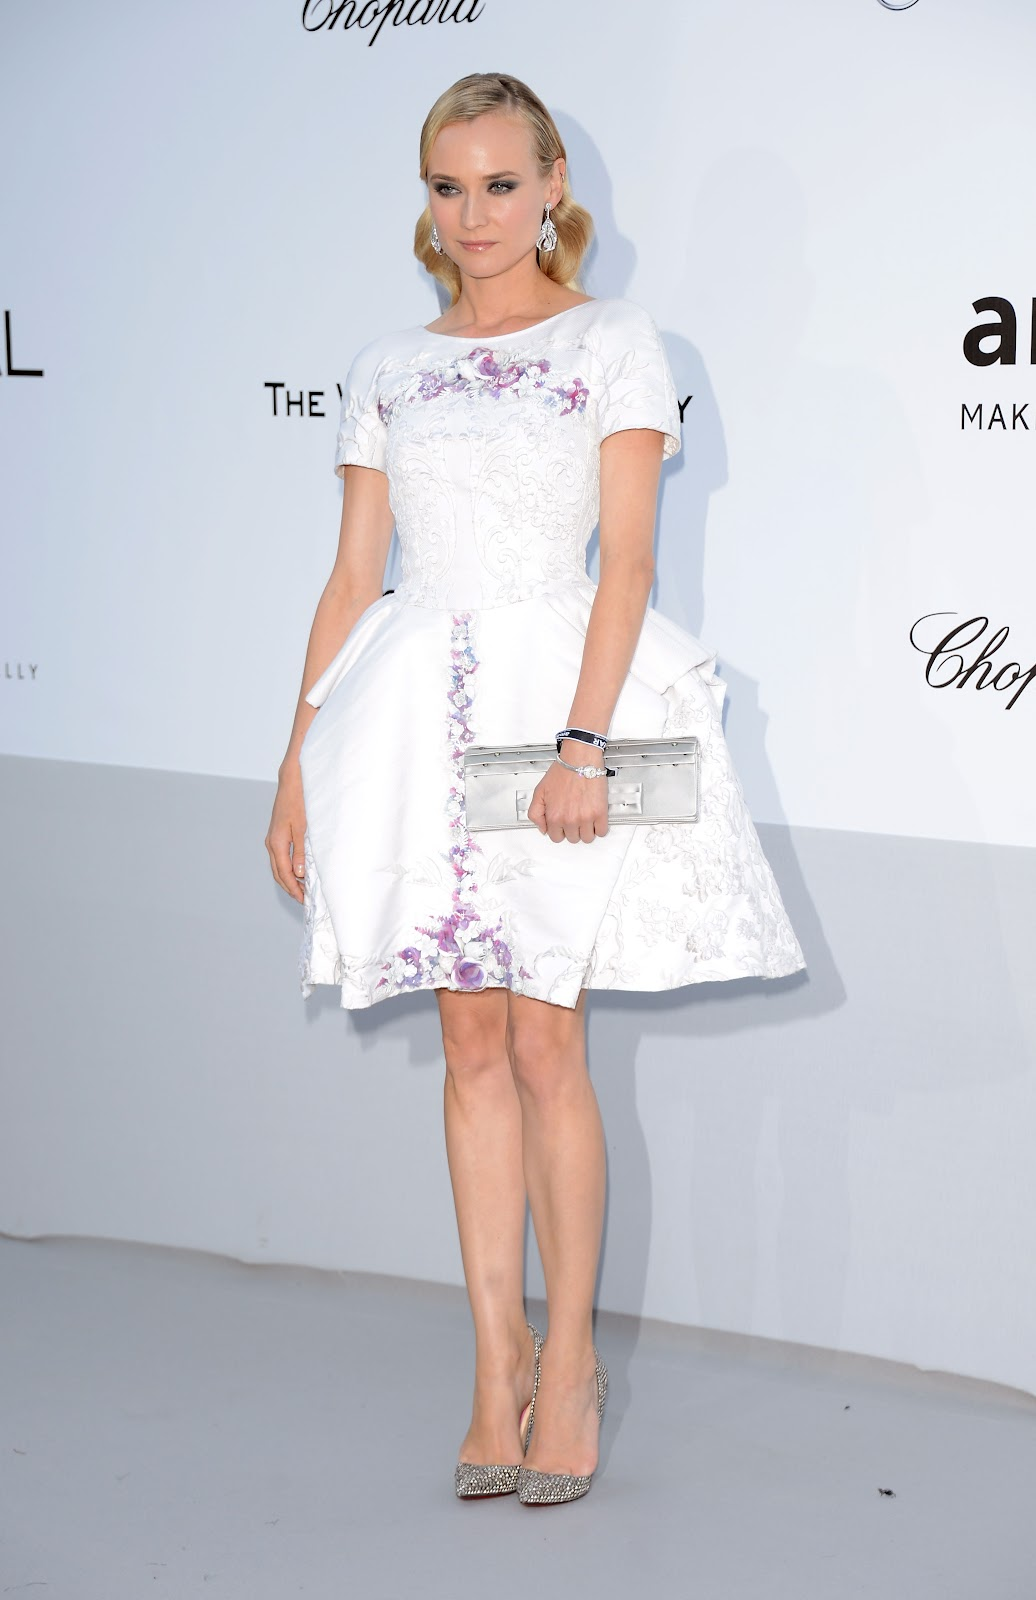 http://3.bp.blogspot.com/-iFYqQOjtyww/T8JfCOWHuWI/AAAAAAAAA0Q/w2r8xQtzwI0/s1600/80043_Diane_Kruger_amfAR_Cinema_Against_AIDS_Benefit_in_Cannes_France_May_24_2012_001_122_575lo.jpg